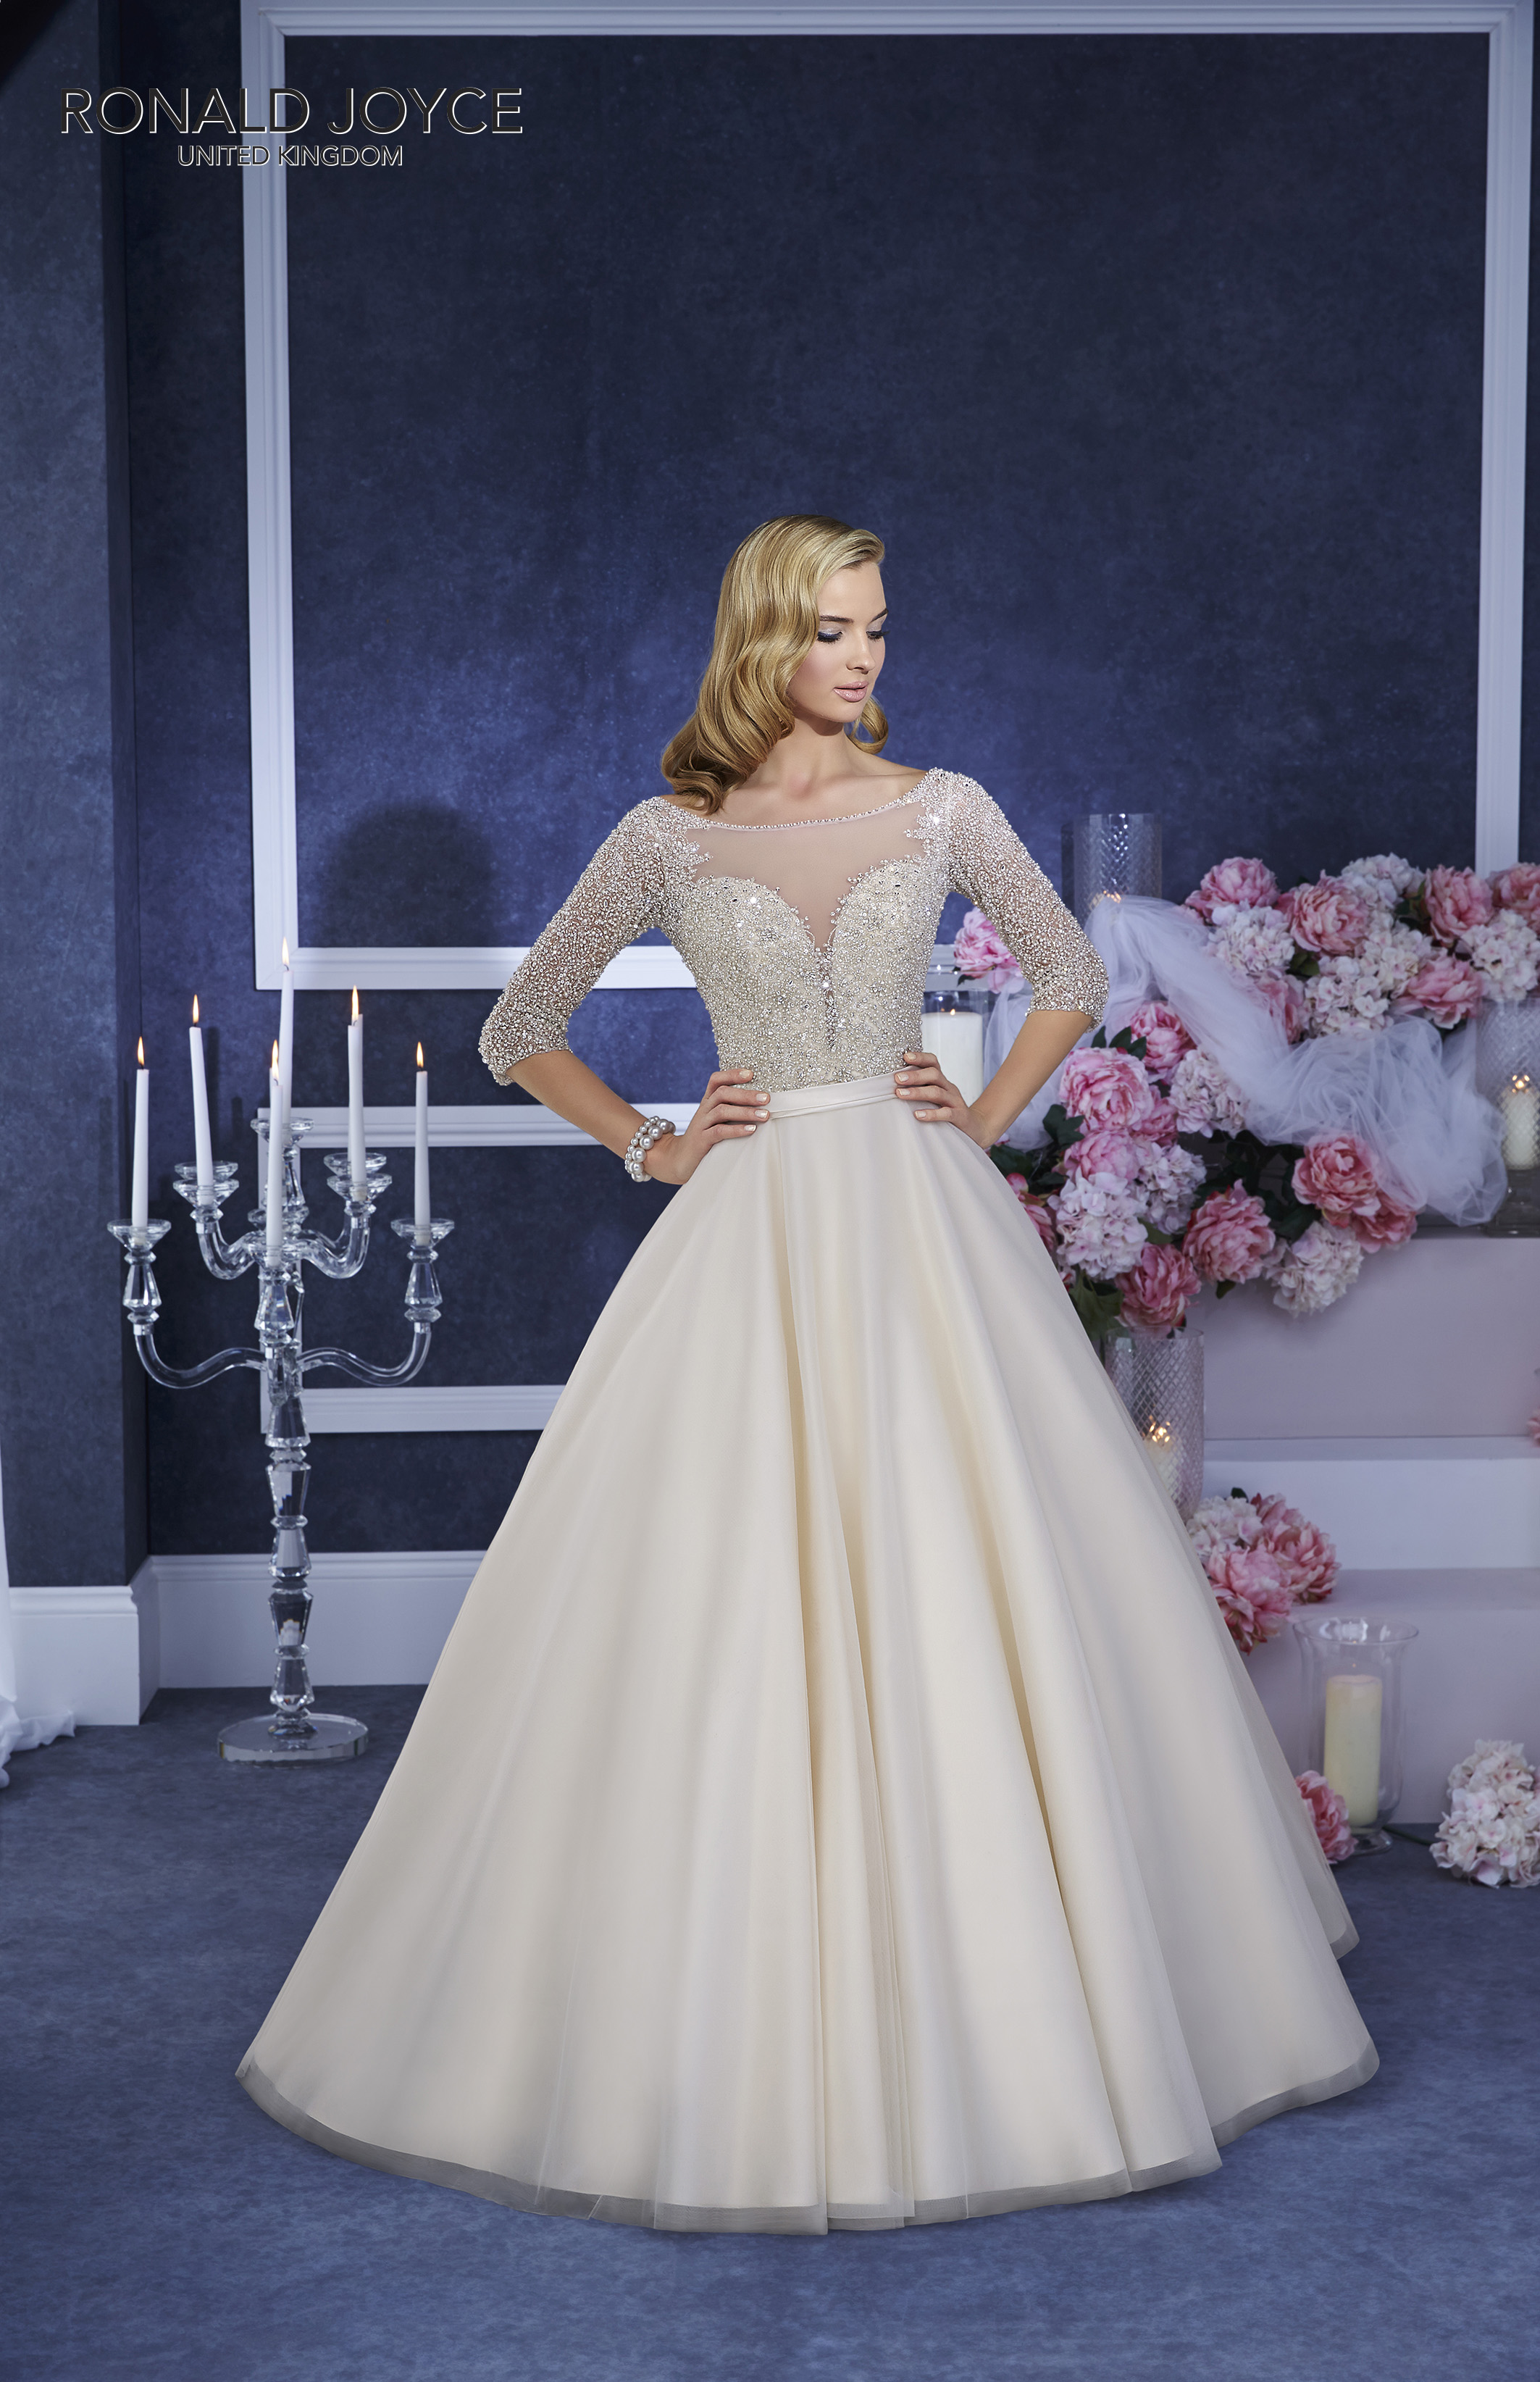 Electra 69055 Beaded top Light gold size 14 wedding dress with sleeve